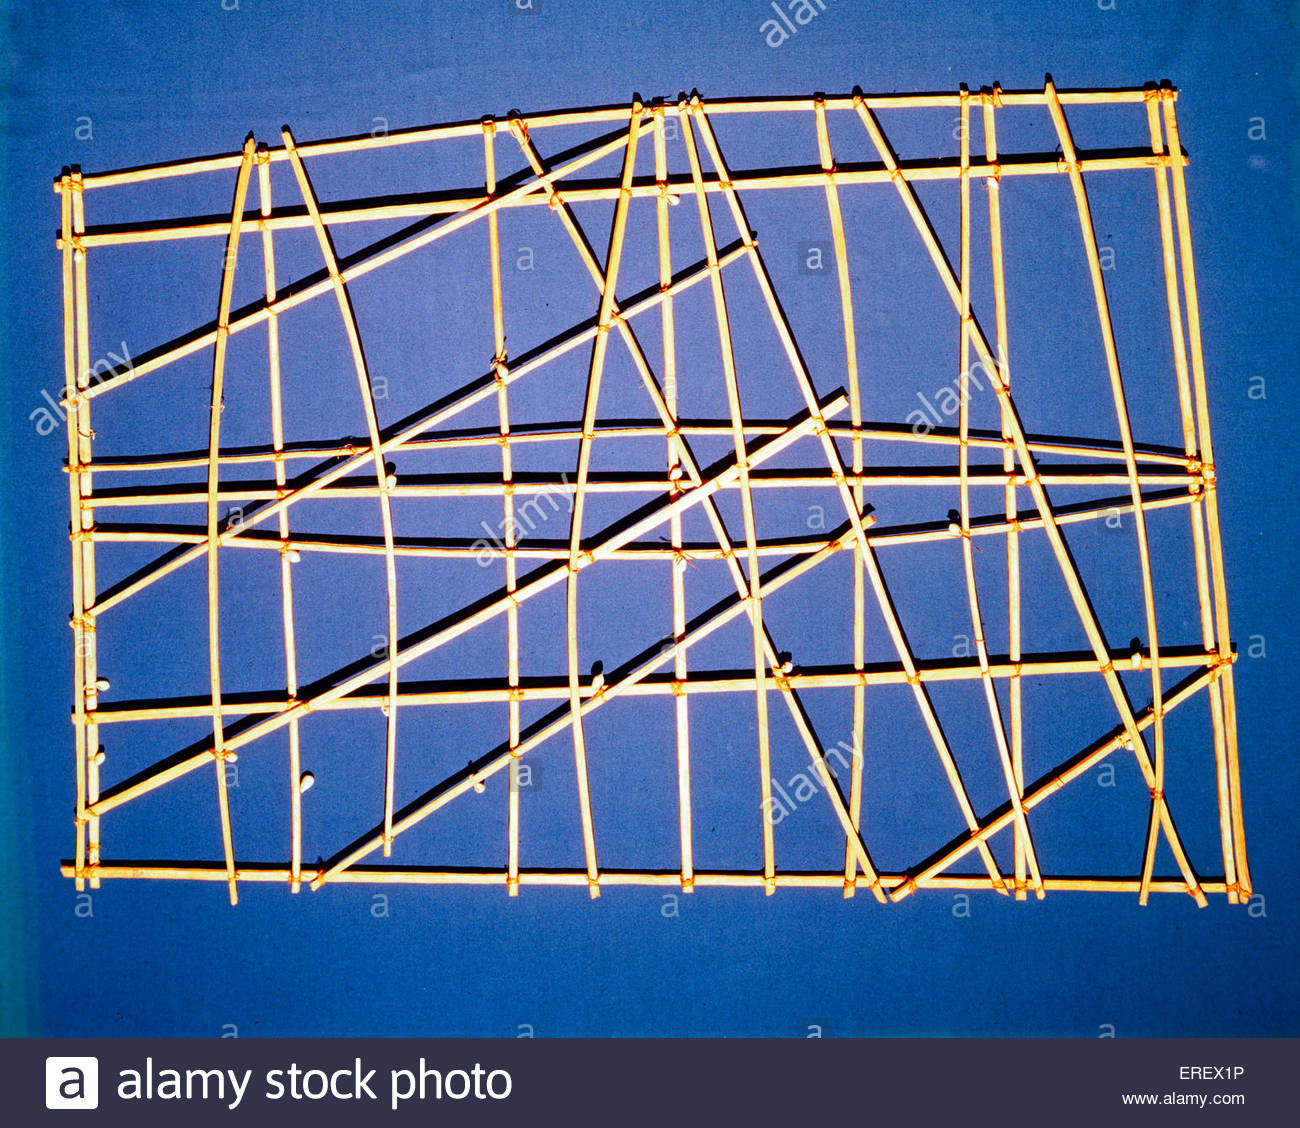 Polynesian Stick Chart  - navigation training device. Also known as rebbelib. From the Marshall Islands, Micronesia. - Stock Image